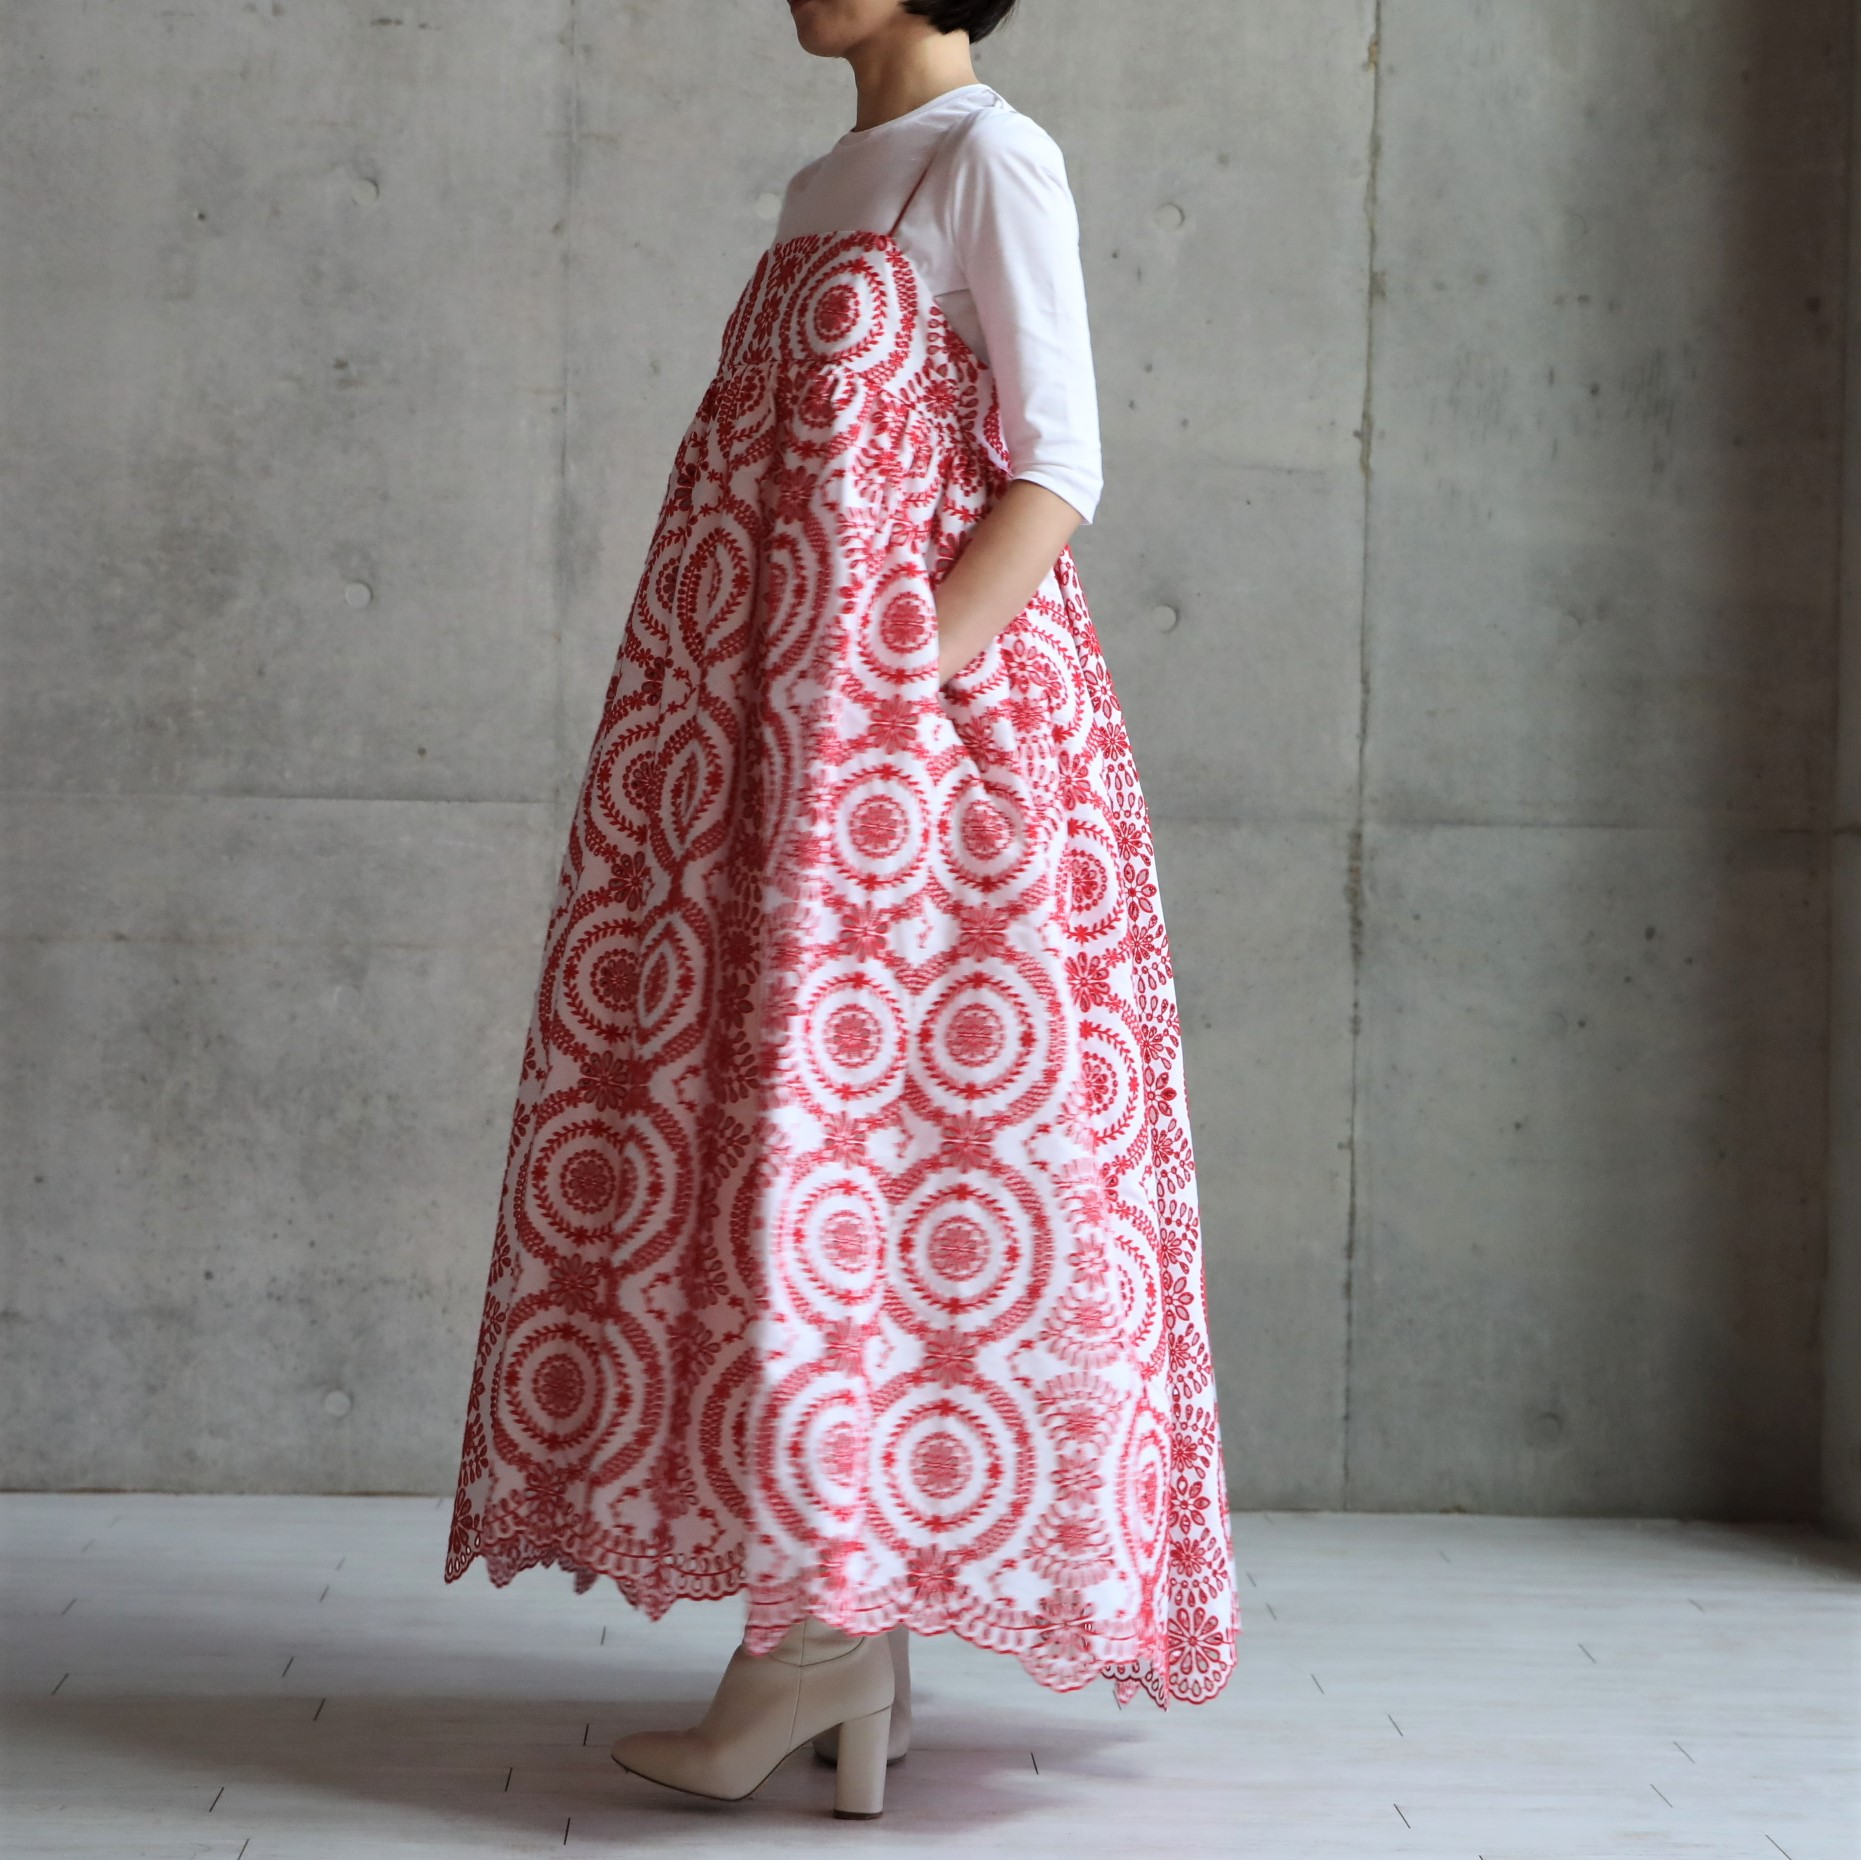 Cocco embroidery Red画像